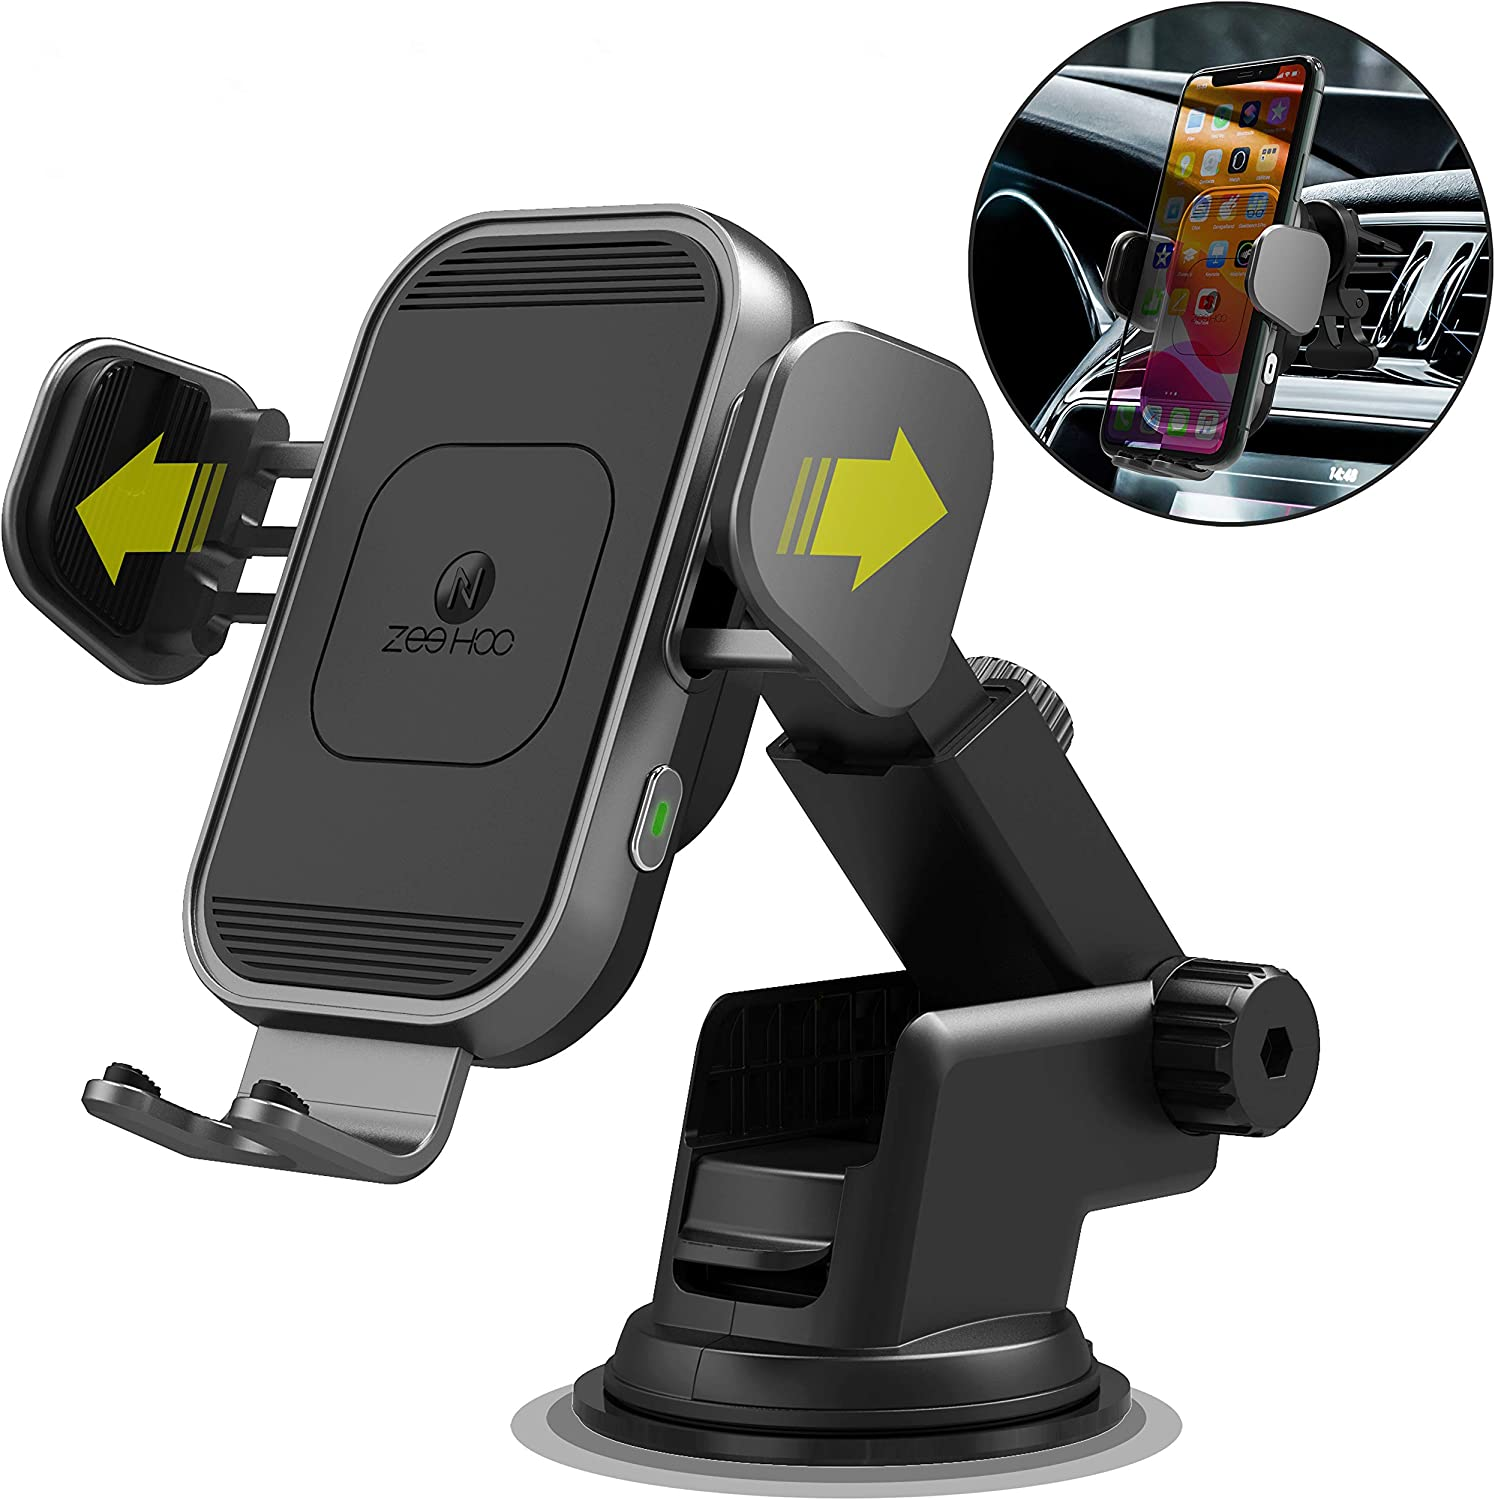 [2020 Upgraded Version] ZeeHoo Wireless Car Charger,15W Qi Fast Charging Auto-Clamping Car Mount,Windshield Dash Air Vent Phone Holder Compatible iPhone 11/11 Pro/Pro Max,Samsung Note10/S10/S9 & More